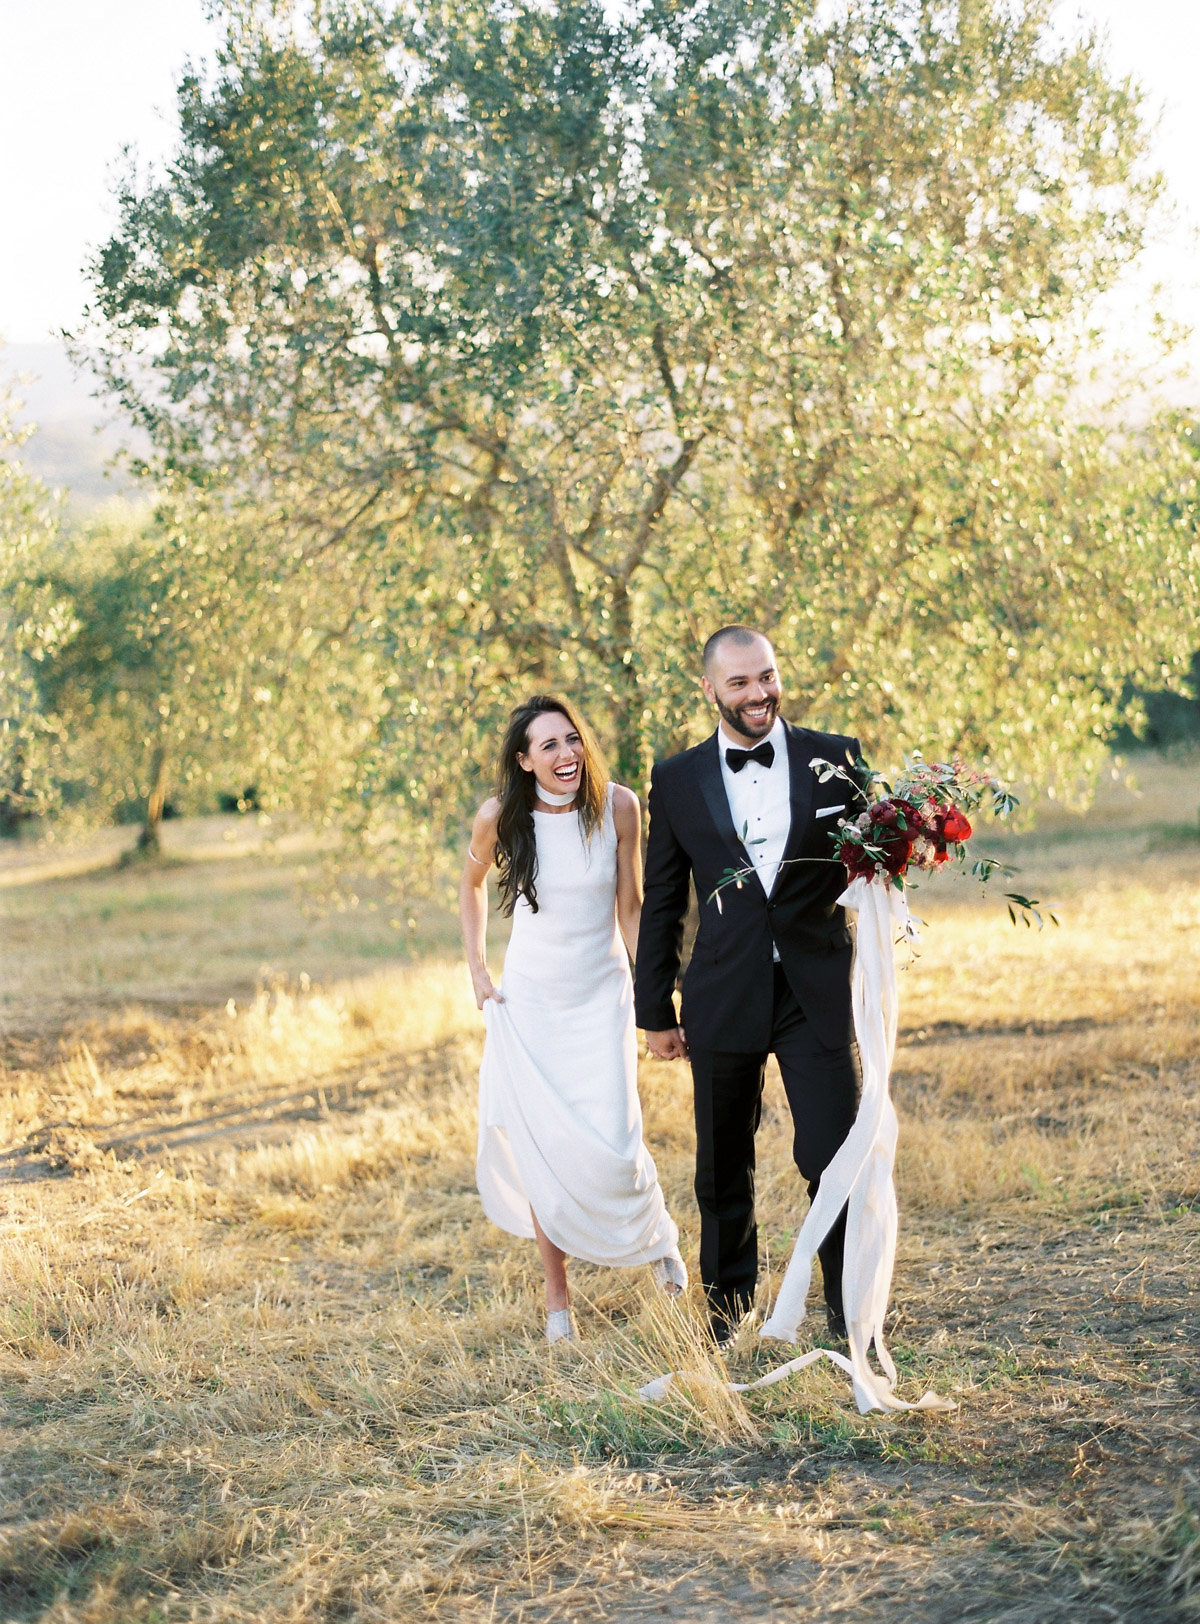 Photo by Katie Grant from our Wedding in Tuscany, Italy